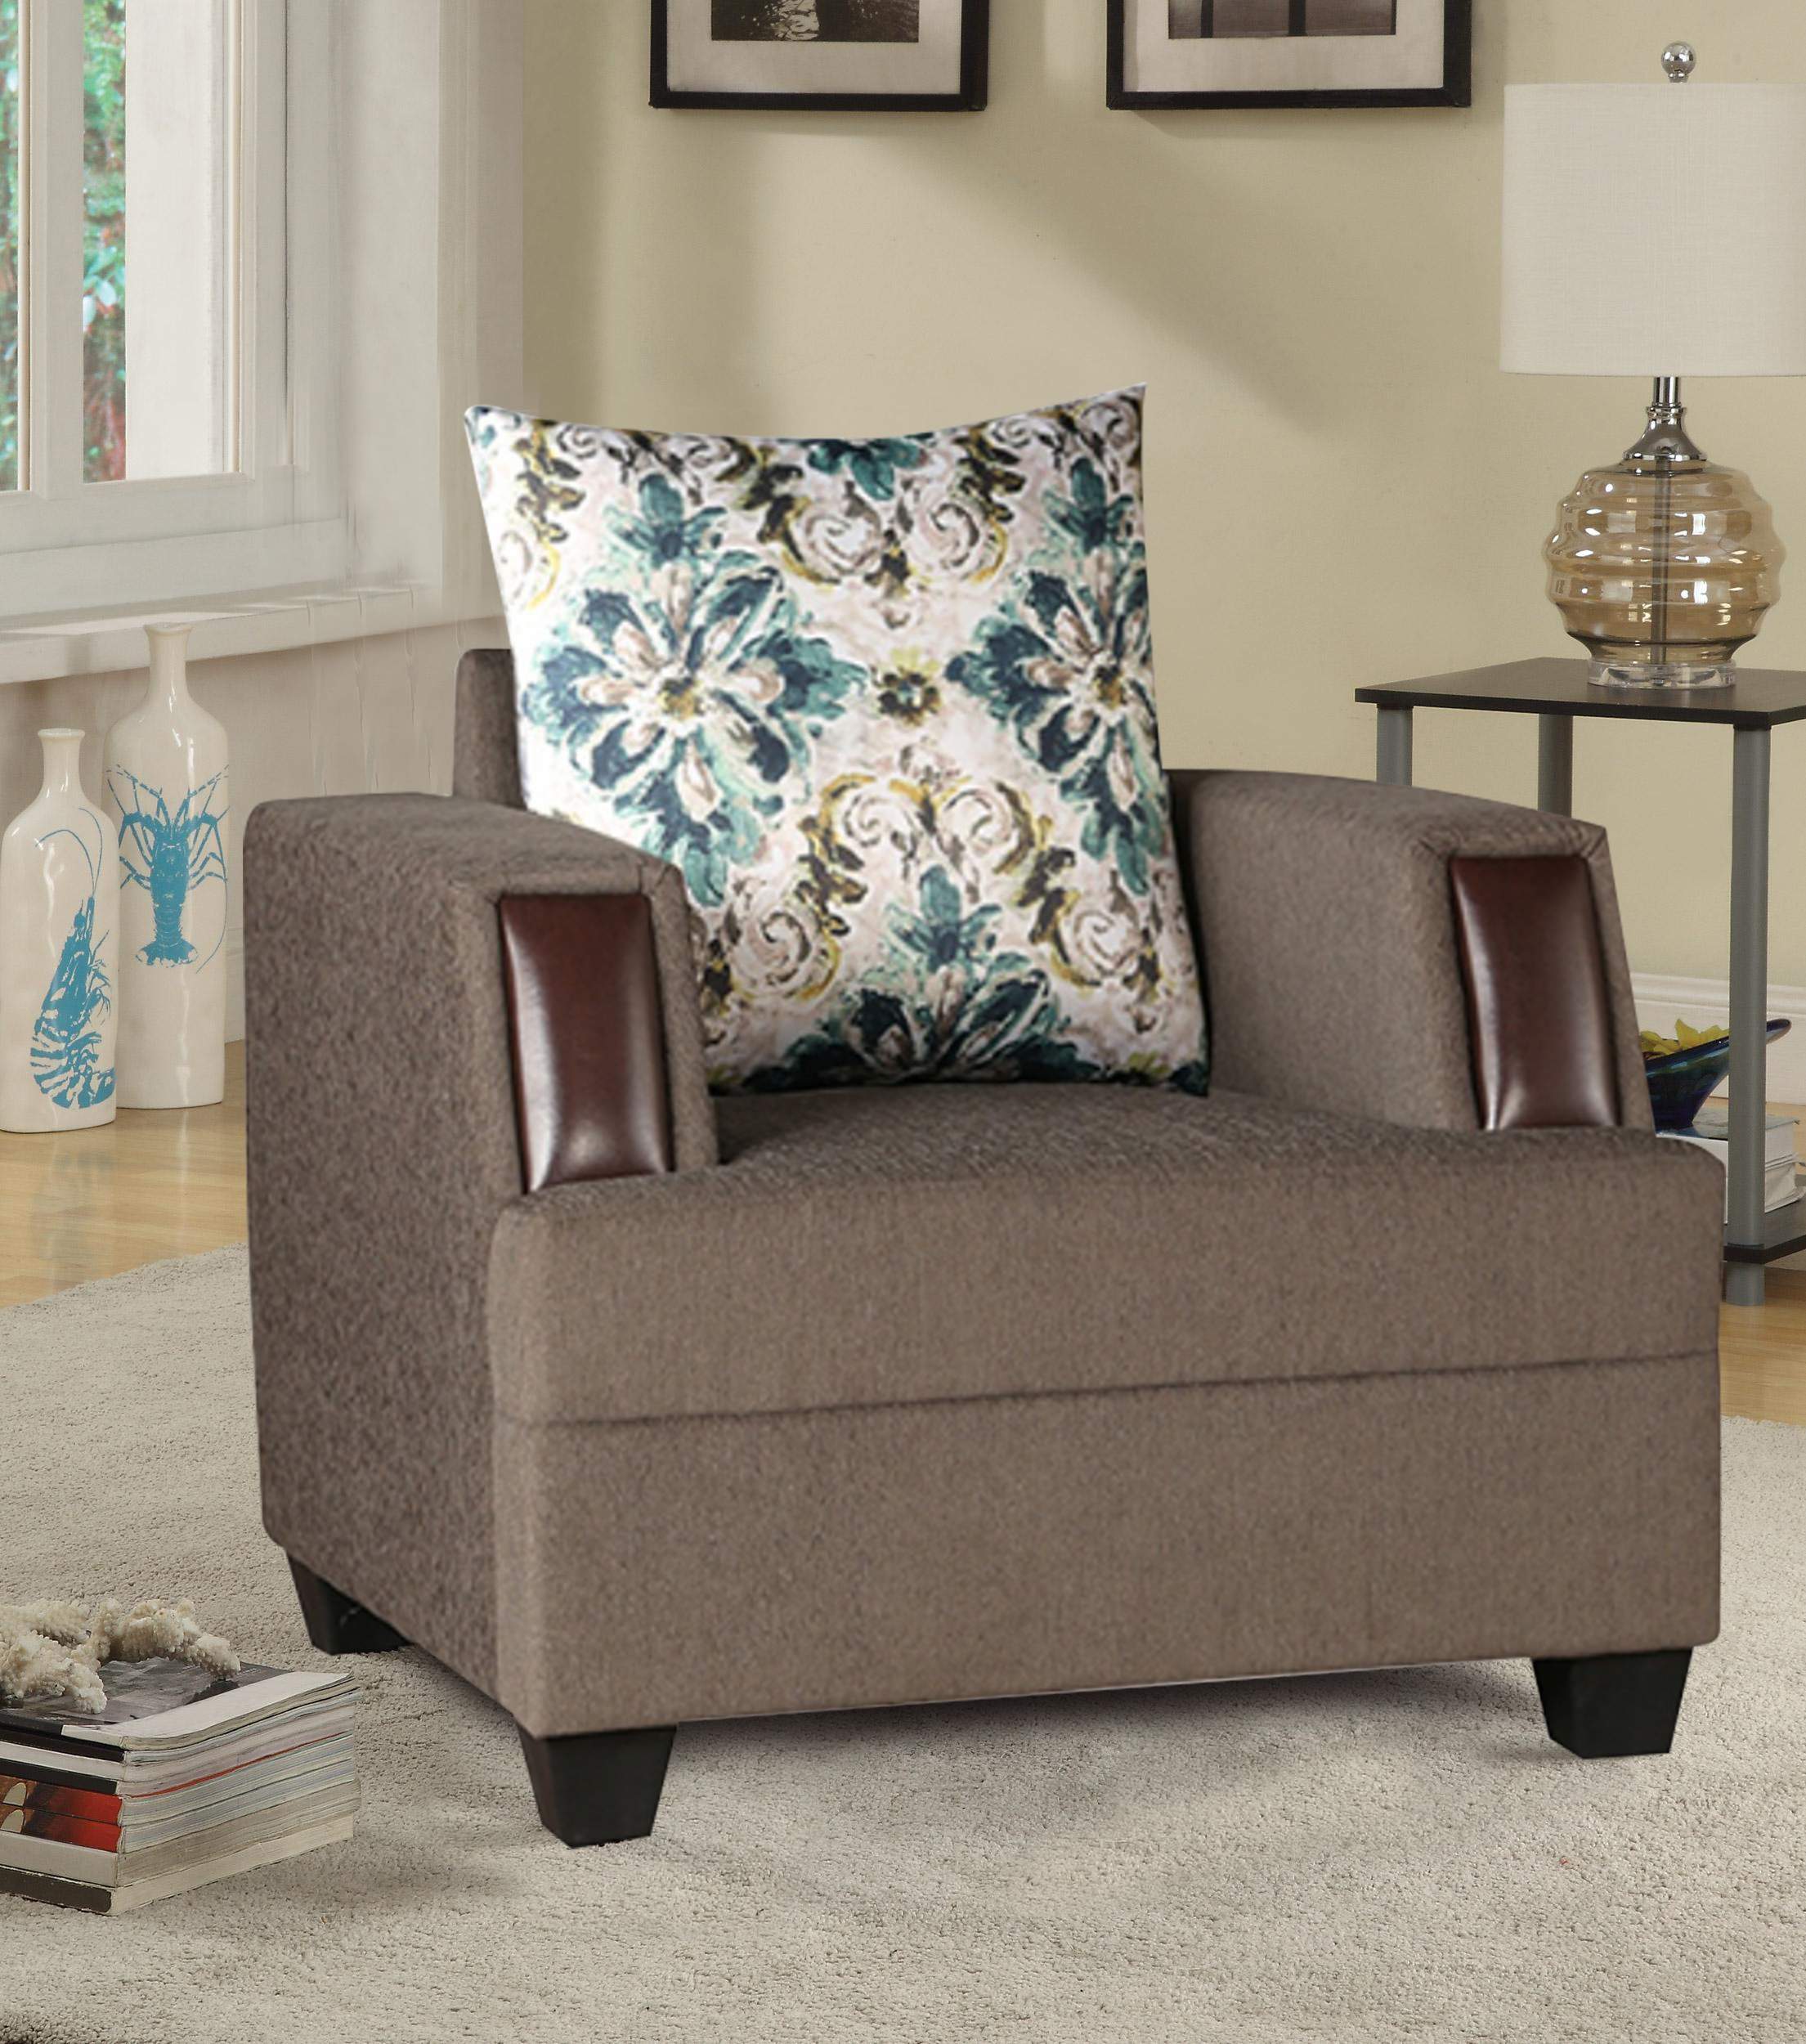 Elanza Fabric Single Seater sofa in Olive Colour by HomeTown